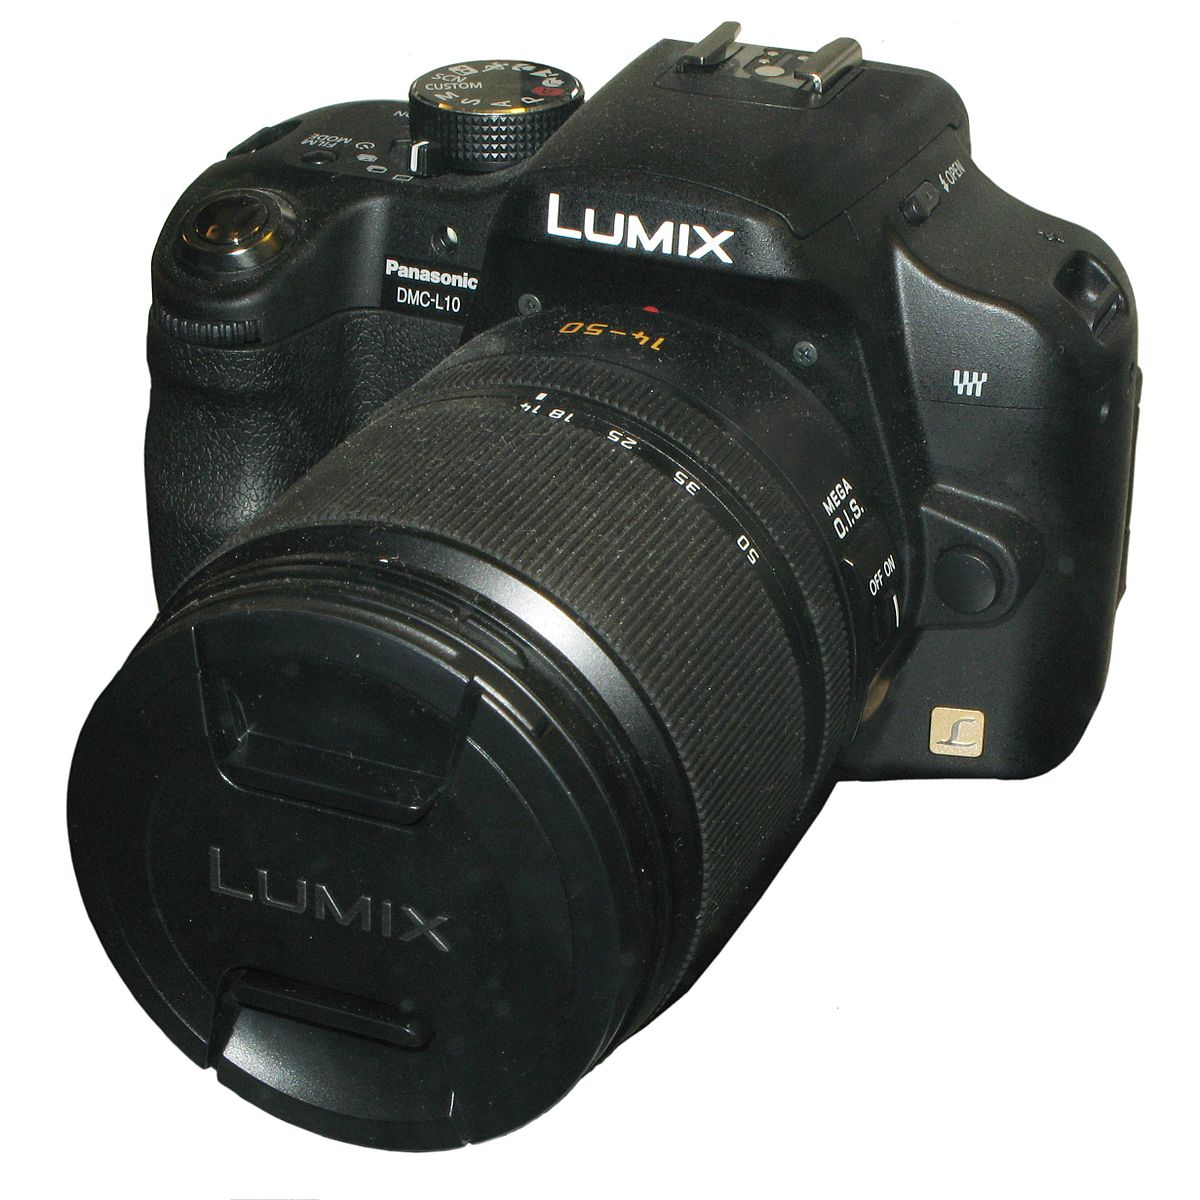 Panasonic lumix dmc tz30 инструкция